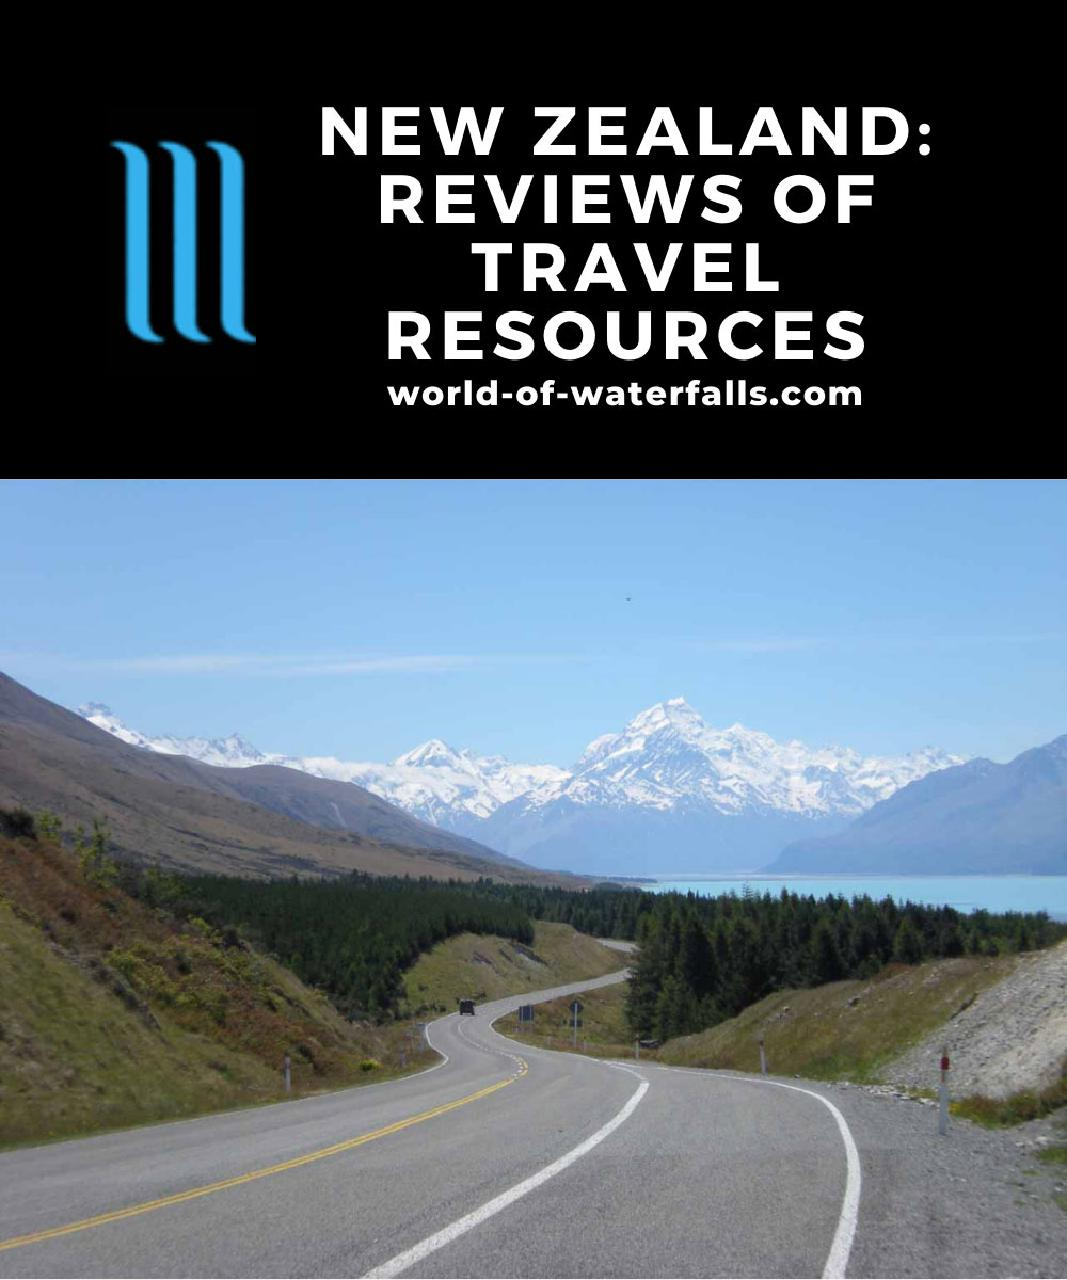 New Zealand: Reviews of Travel Resources